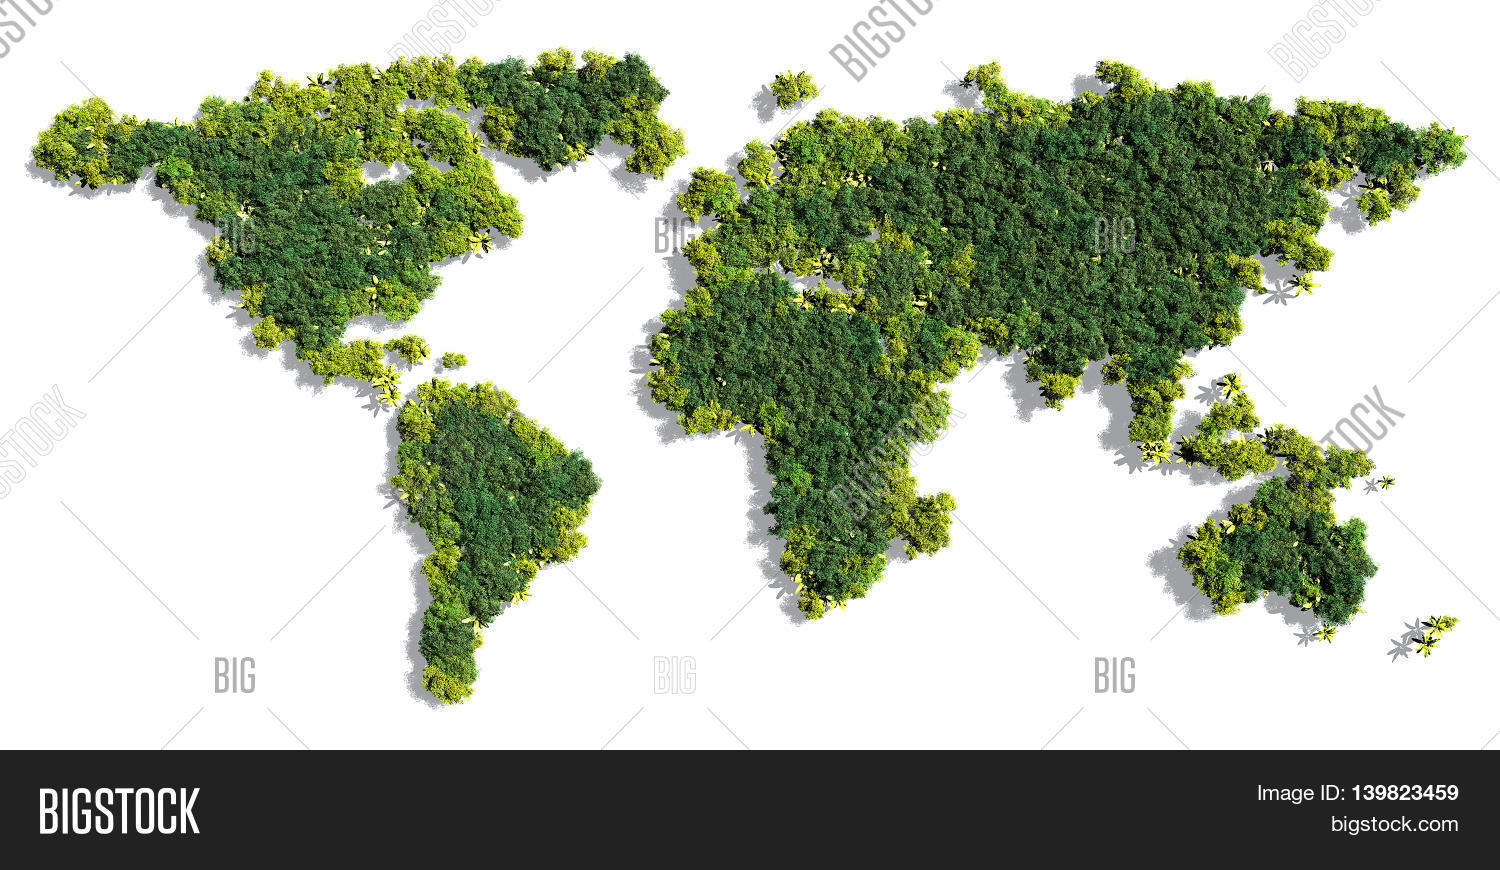 world map made up of various detailed trees on solid white background including the shadows